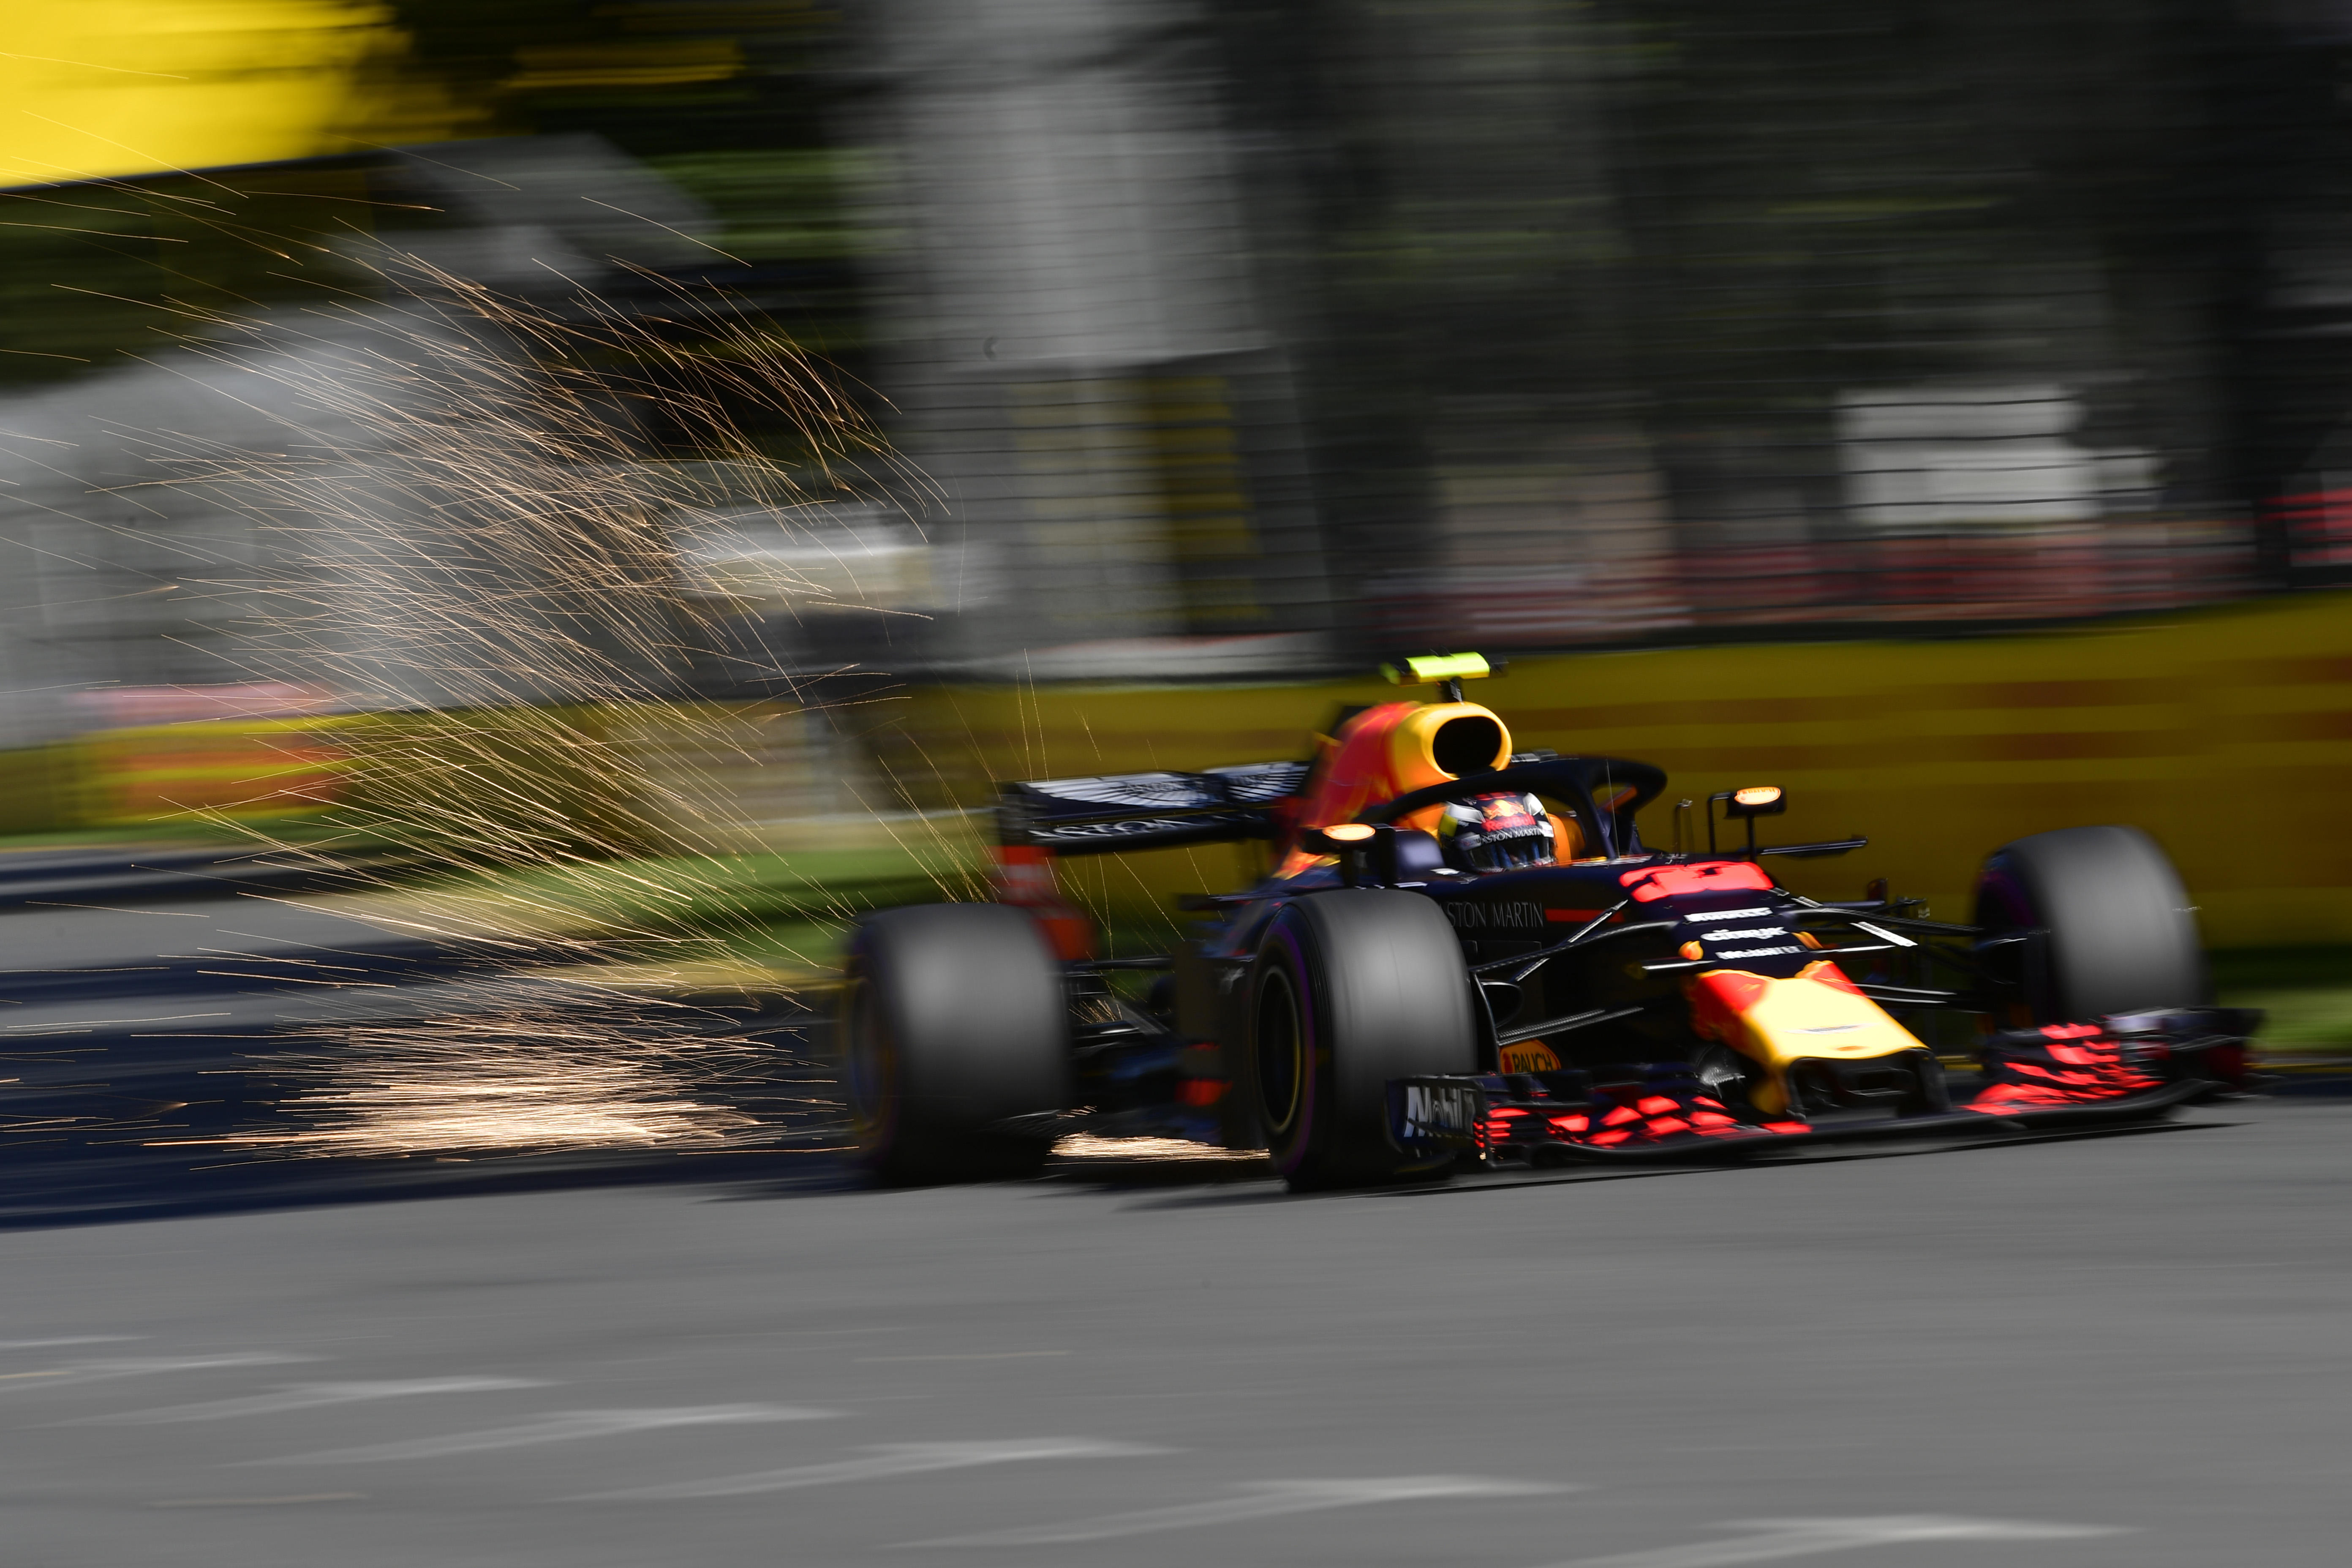 Wallpapers Australian Grand Prix of 2018 | Marco's Formula 1